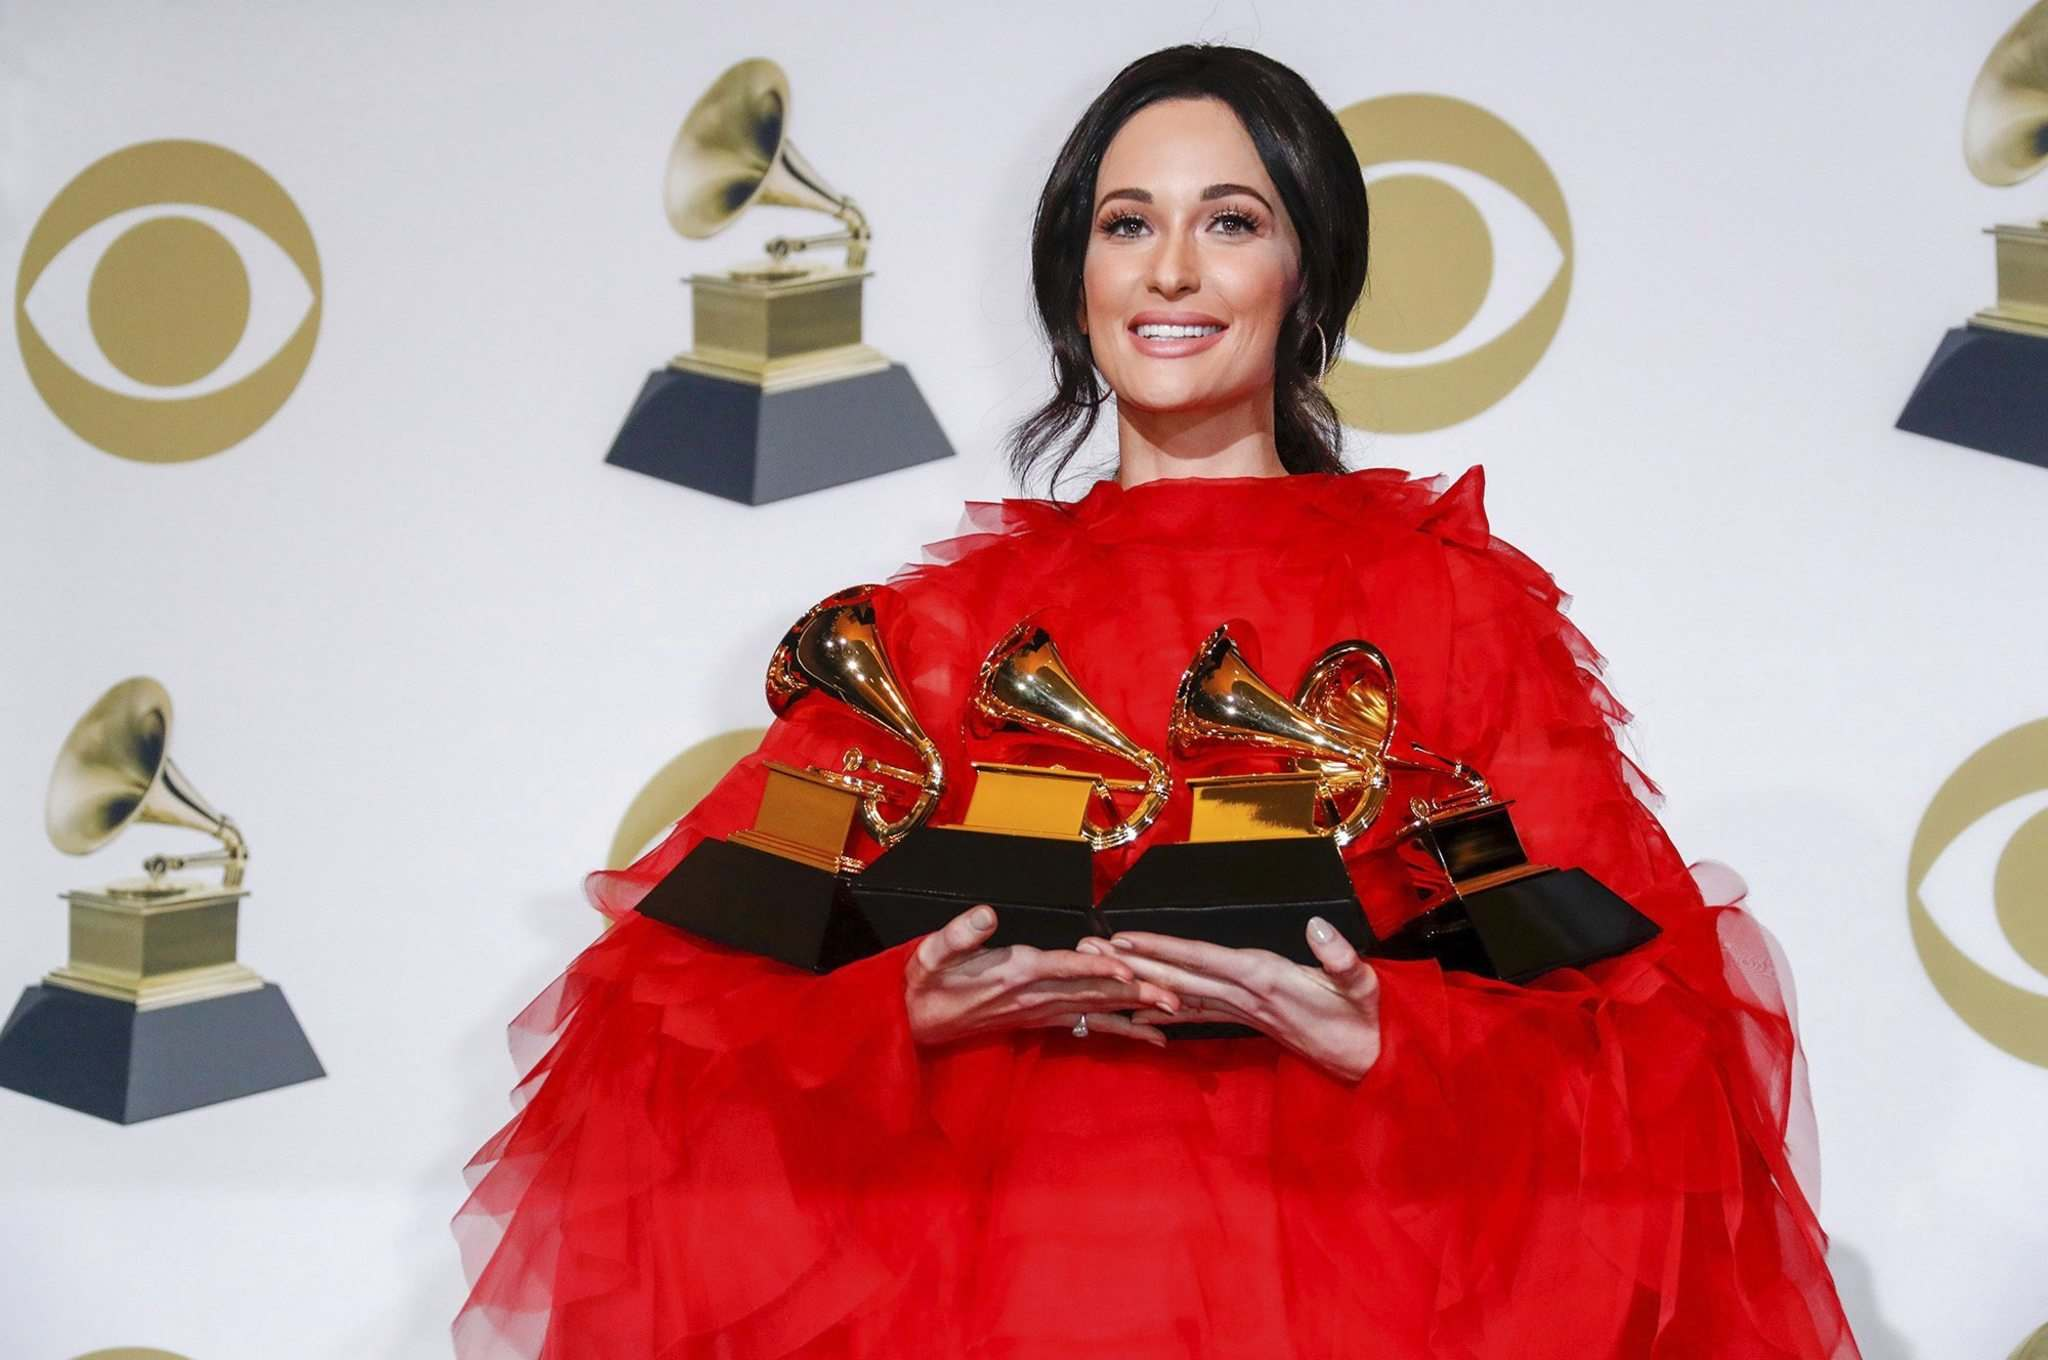 Kacey Musgraves earned four Grammy Awards in February. (Marcus Yam / Tribune Media files)